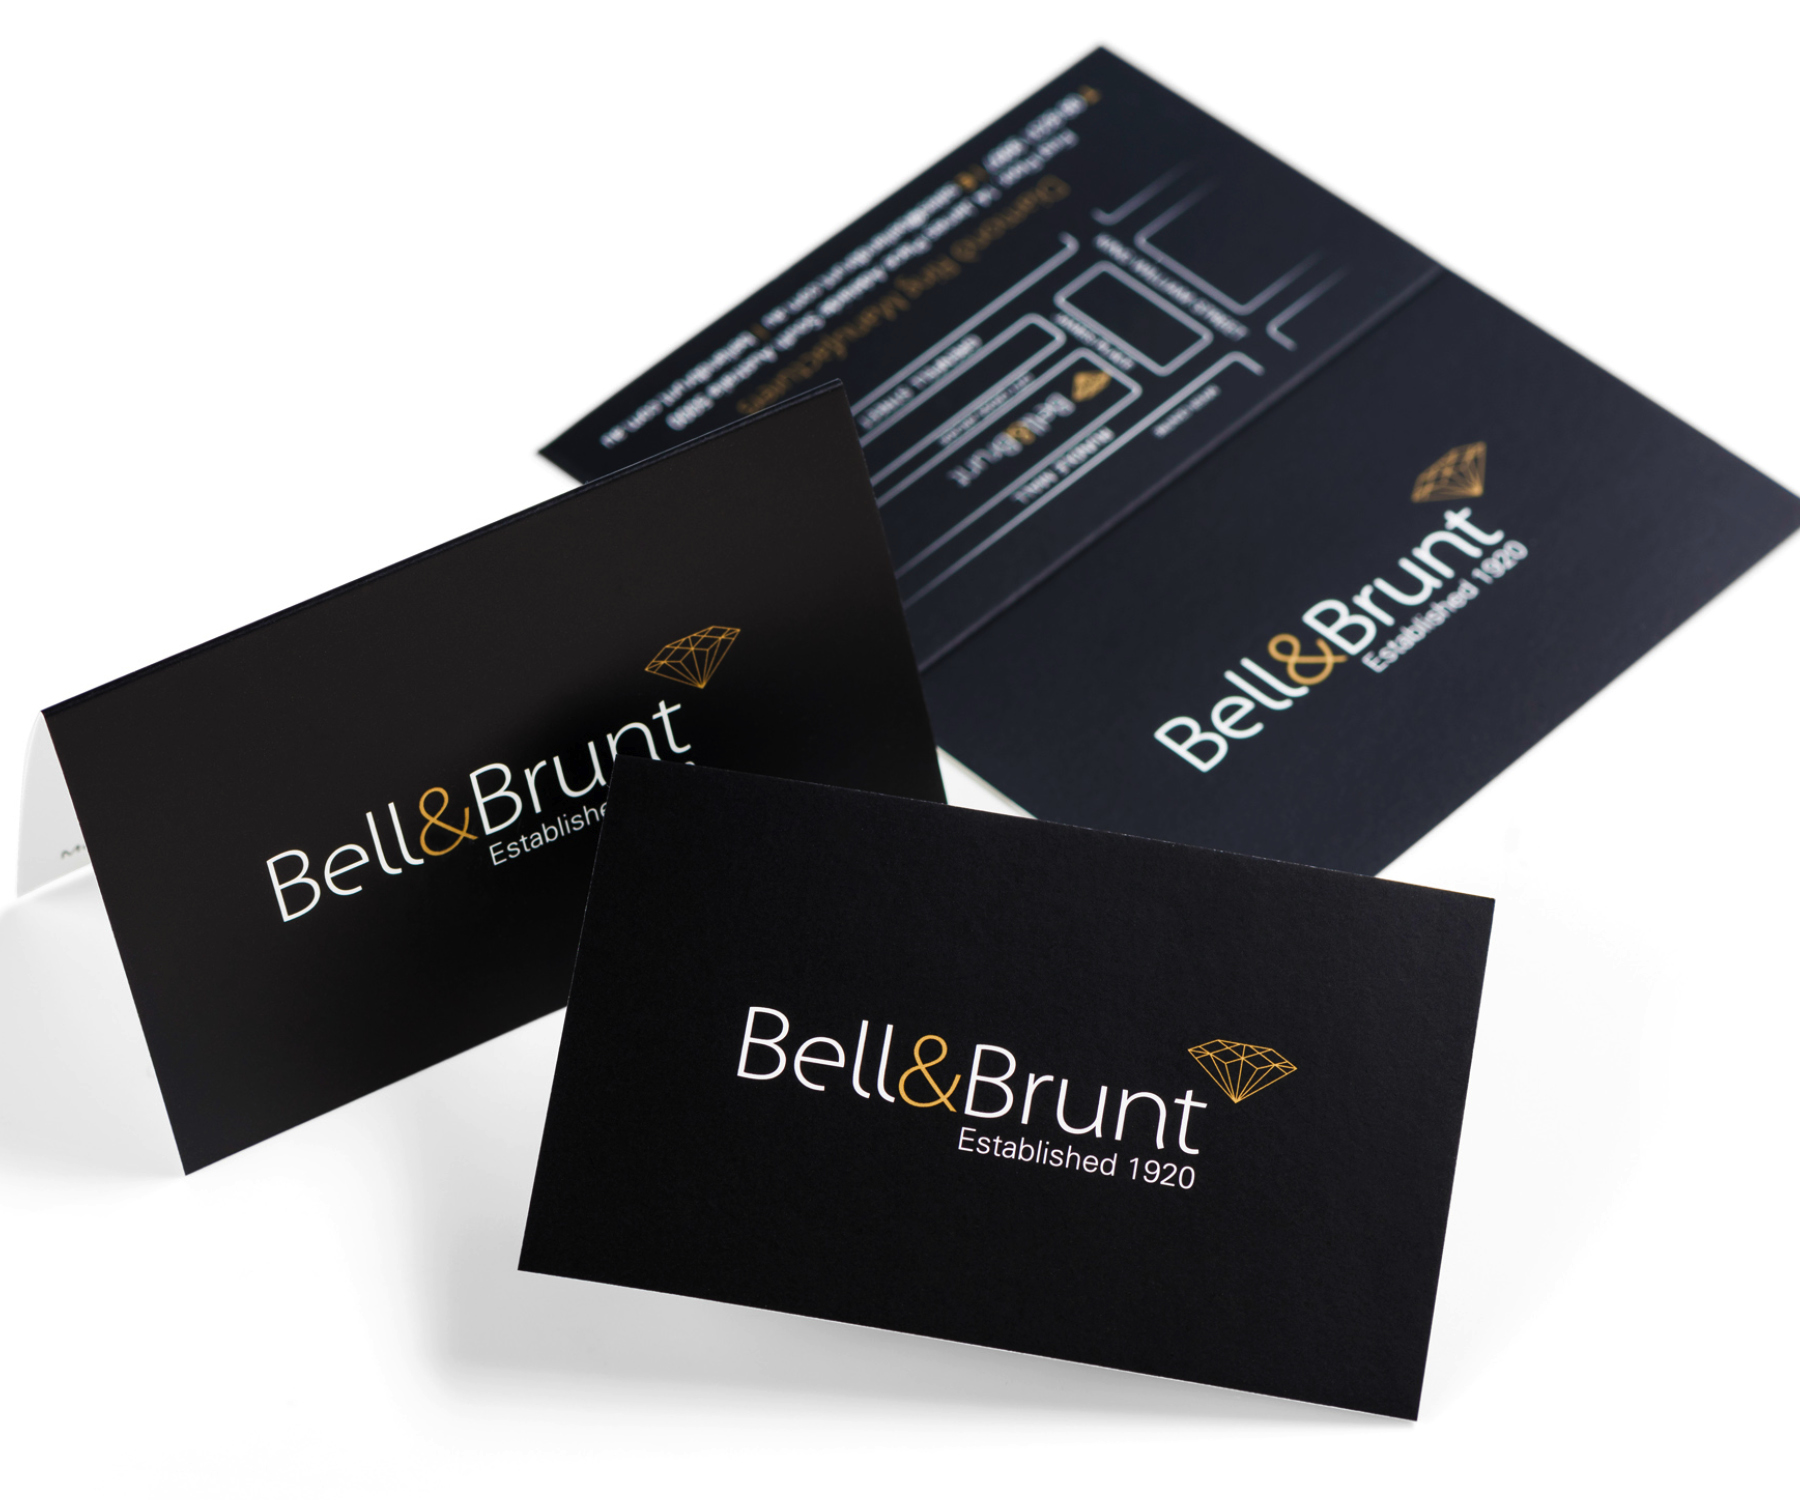 Refreshing a prestige brand.Bell & Brunt is a family-owned manufacturing jeweller that specialises in handcrafted engagement and wedding rings.  With a proud history of almost 100 years in business, Bell & Brunt asked CASTONDESIGN to refresh their brand to better reflect their modern but timeless range of jewellery. Working closely with the family to a tight brief, our brand strategy included redesigning the logo and all visual communication including store signage, corporate stationery, their online presence and advertising.